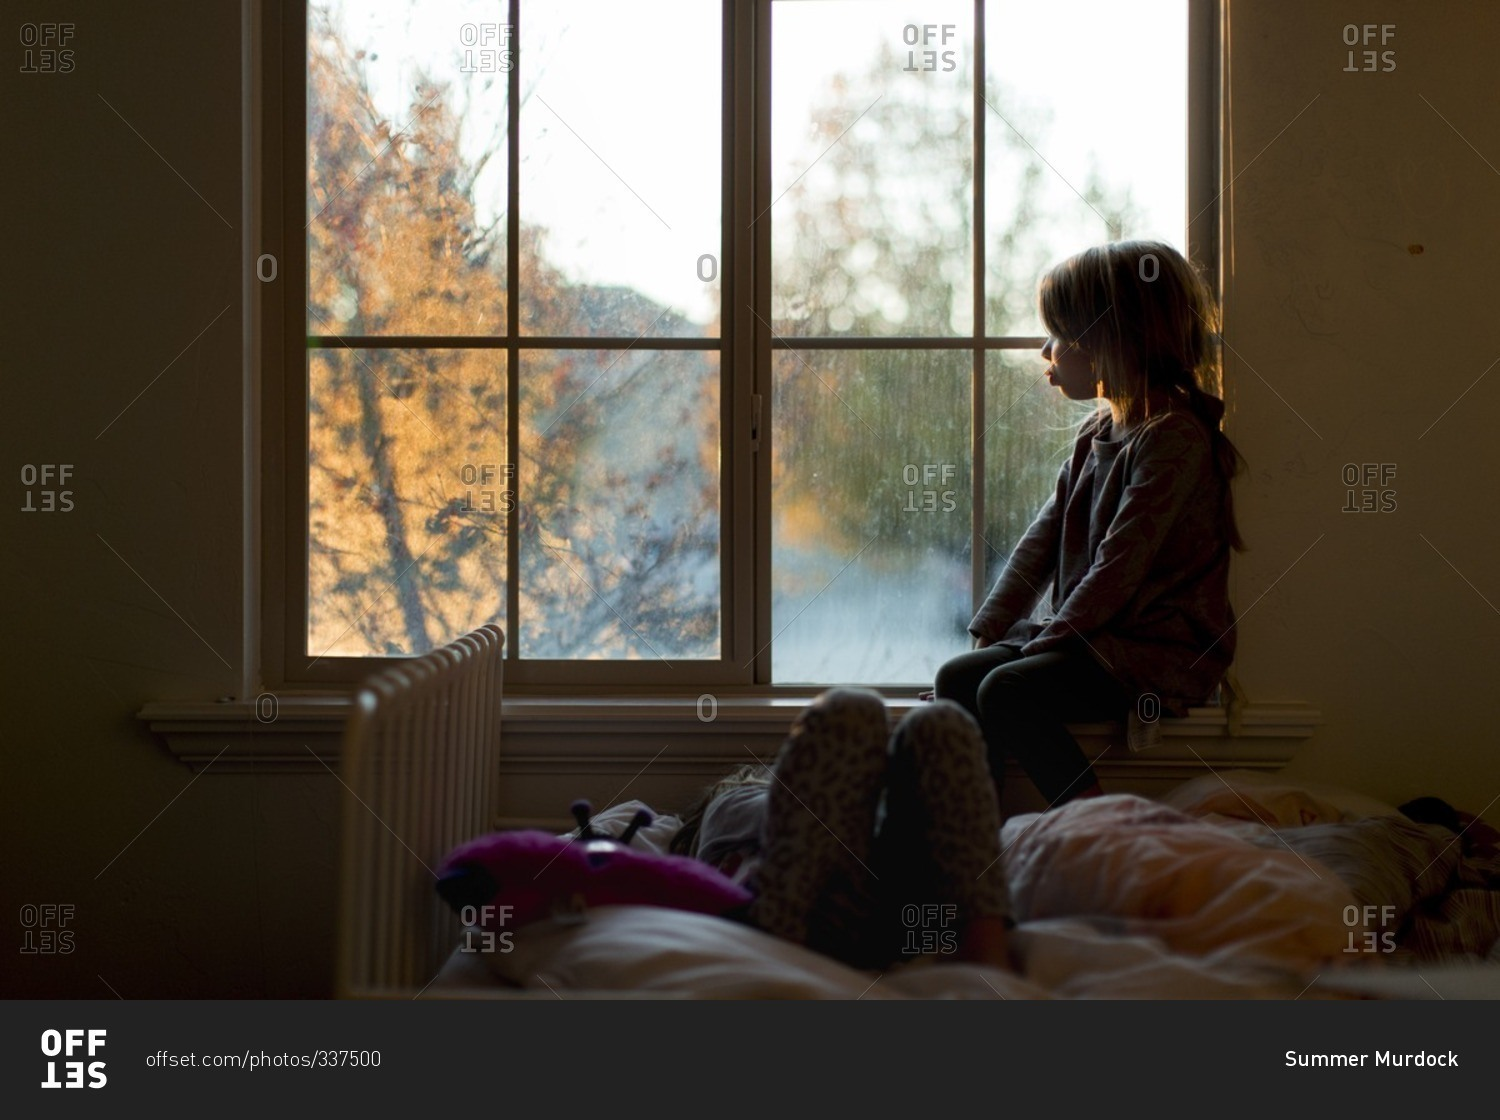 Sterling Have Any Girl Staring Out Window By Bed Stock Photo Offset Looking Out Window Images Looking Out Window S bark post Looking Out Window